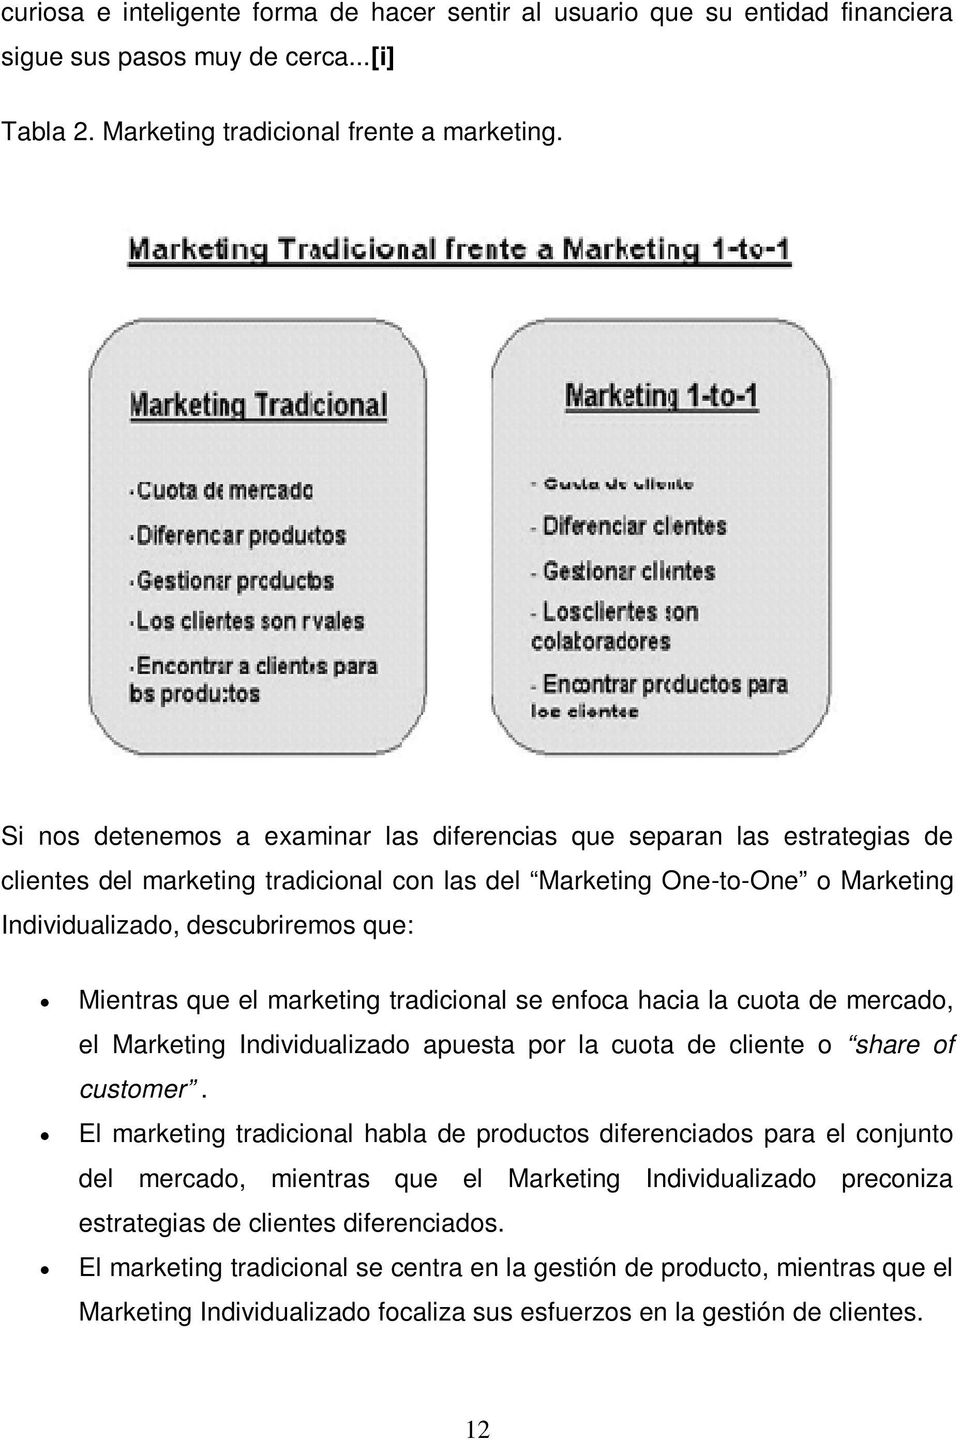 que el marketing tradicional se enfoca hacia la cuota de mercado, el Marketing Individualizado apuesta por la cuota de cliente o share of customer.